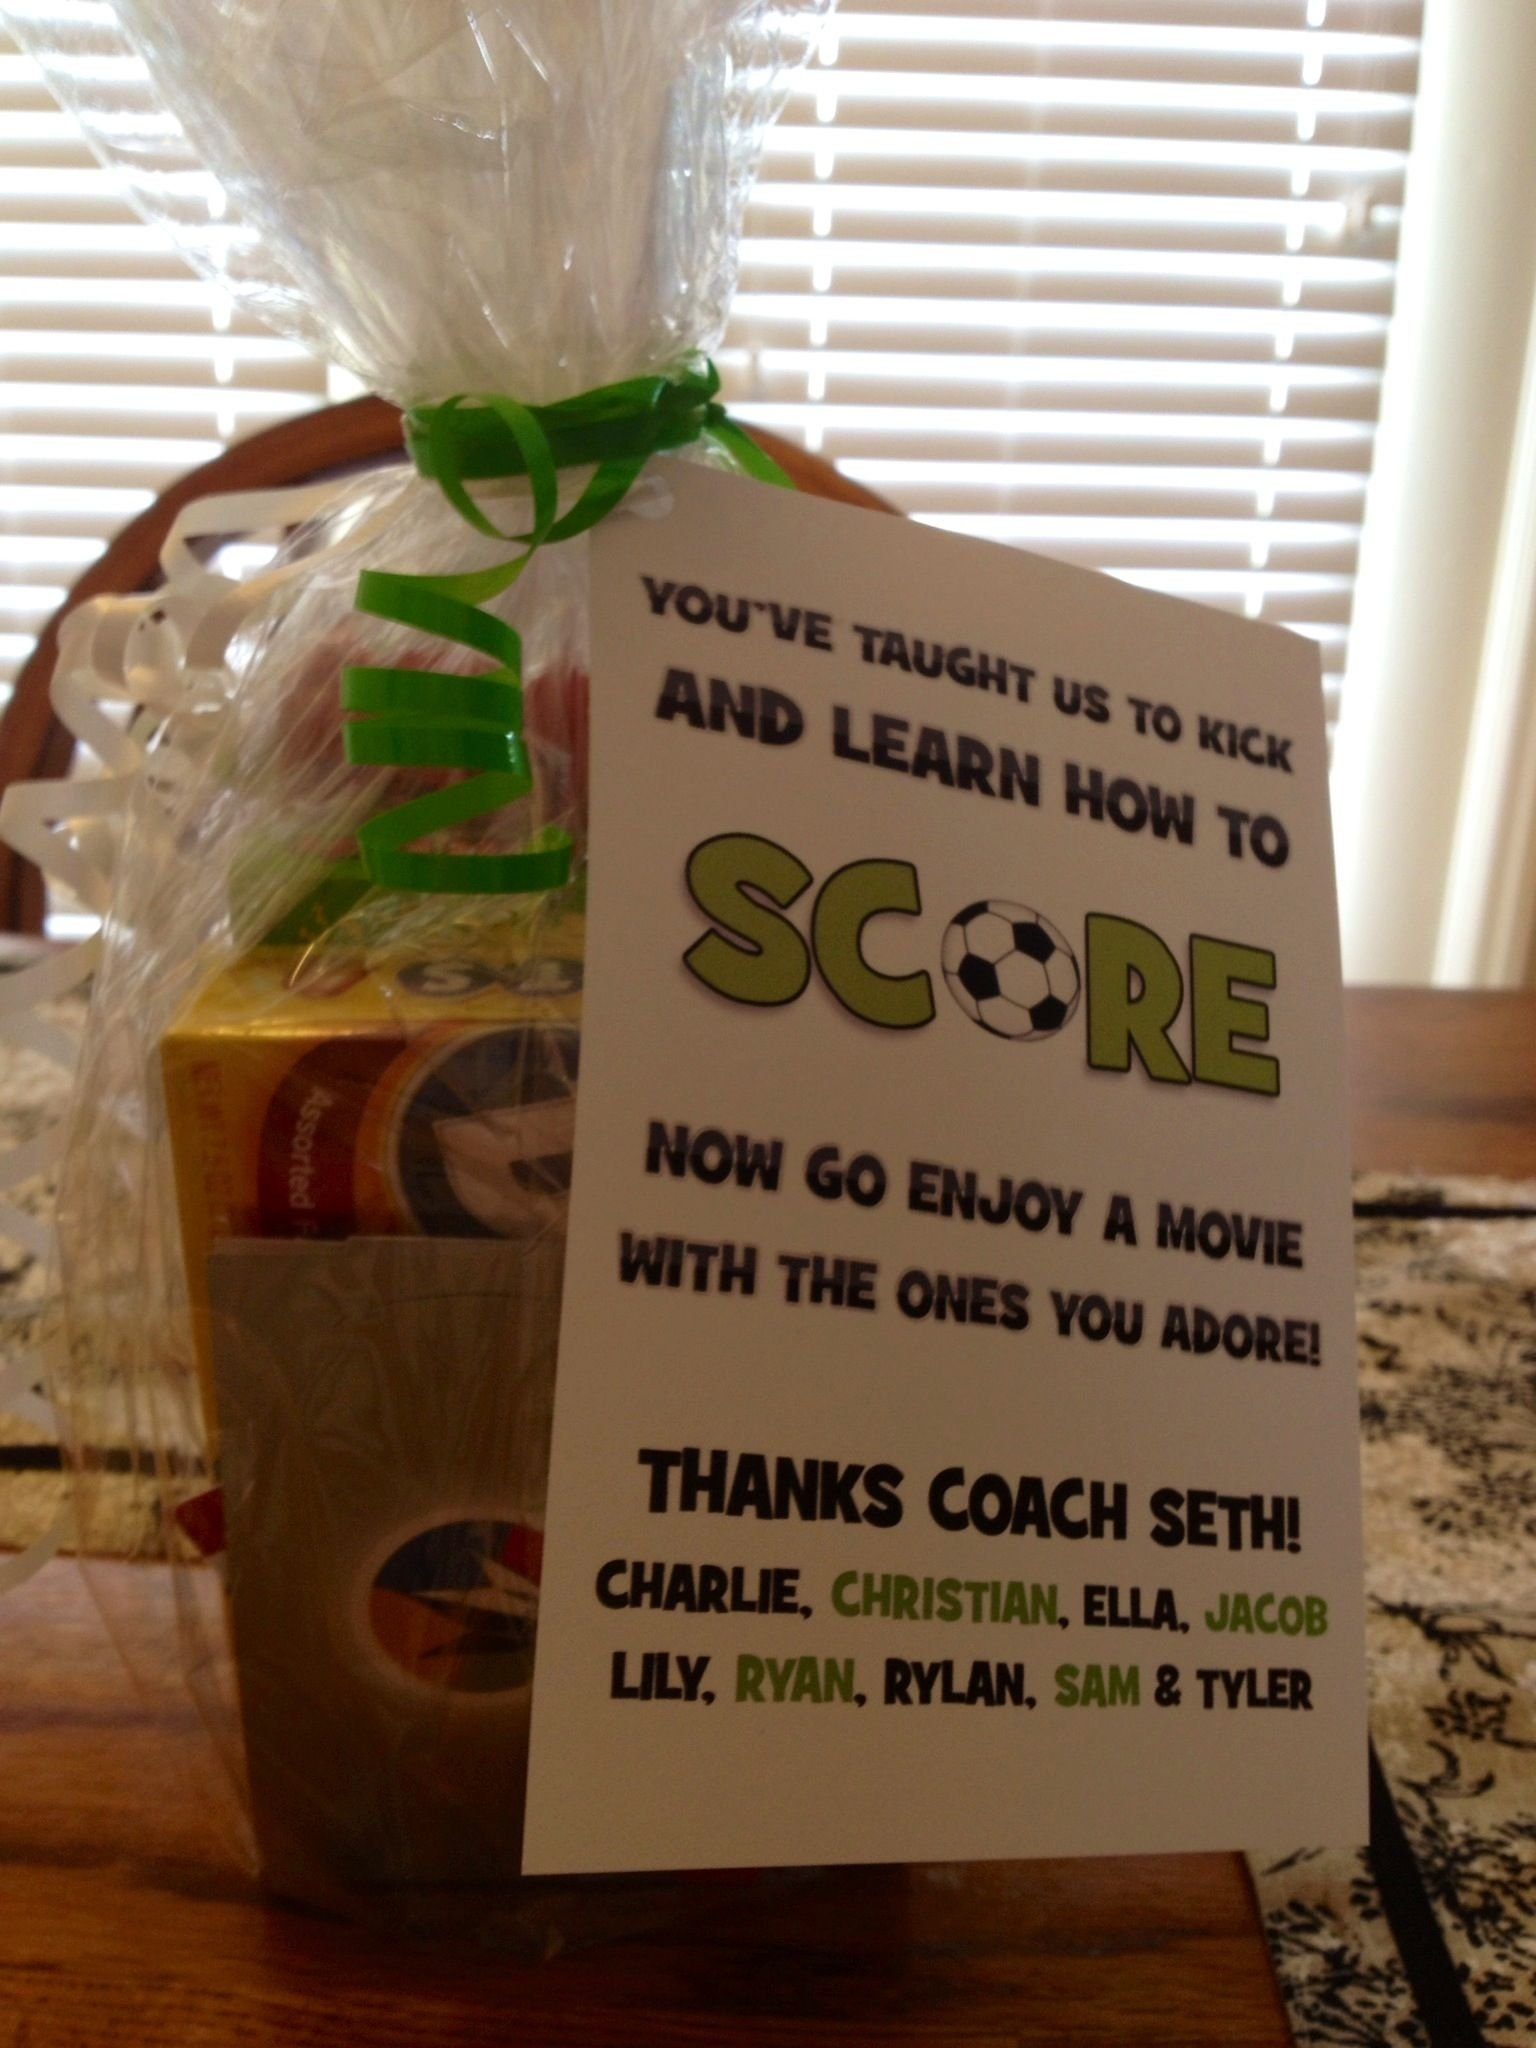 found ideas on pinterest and made for our soccer coach! make card on